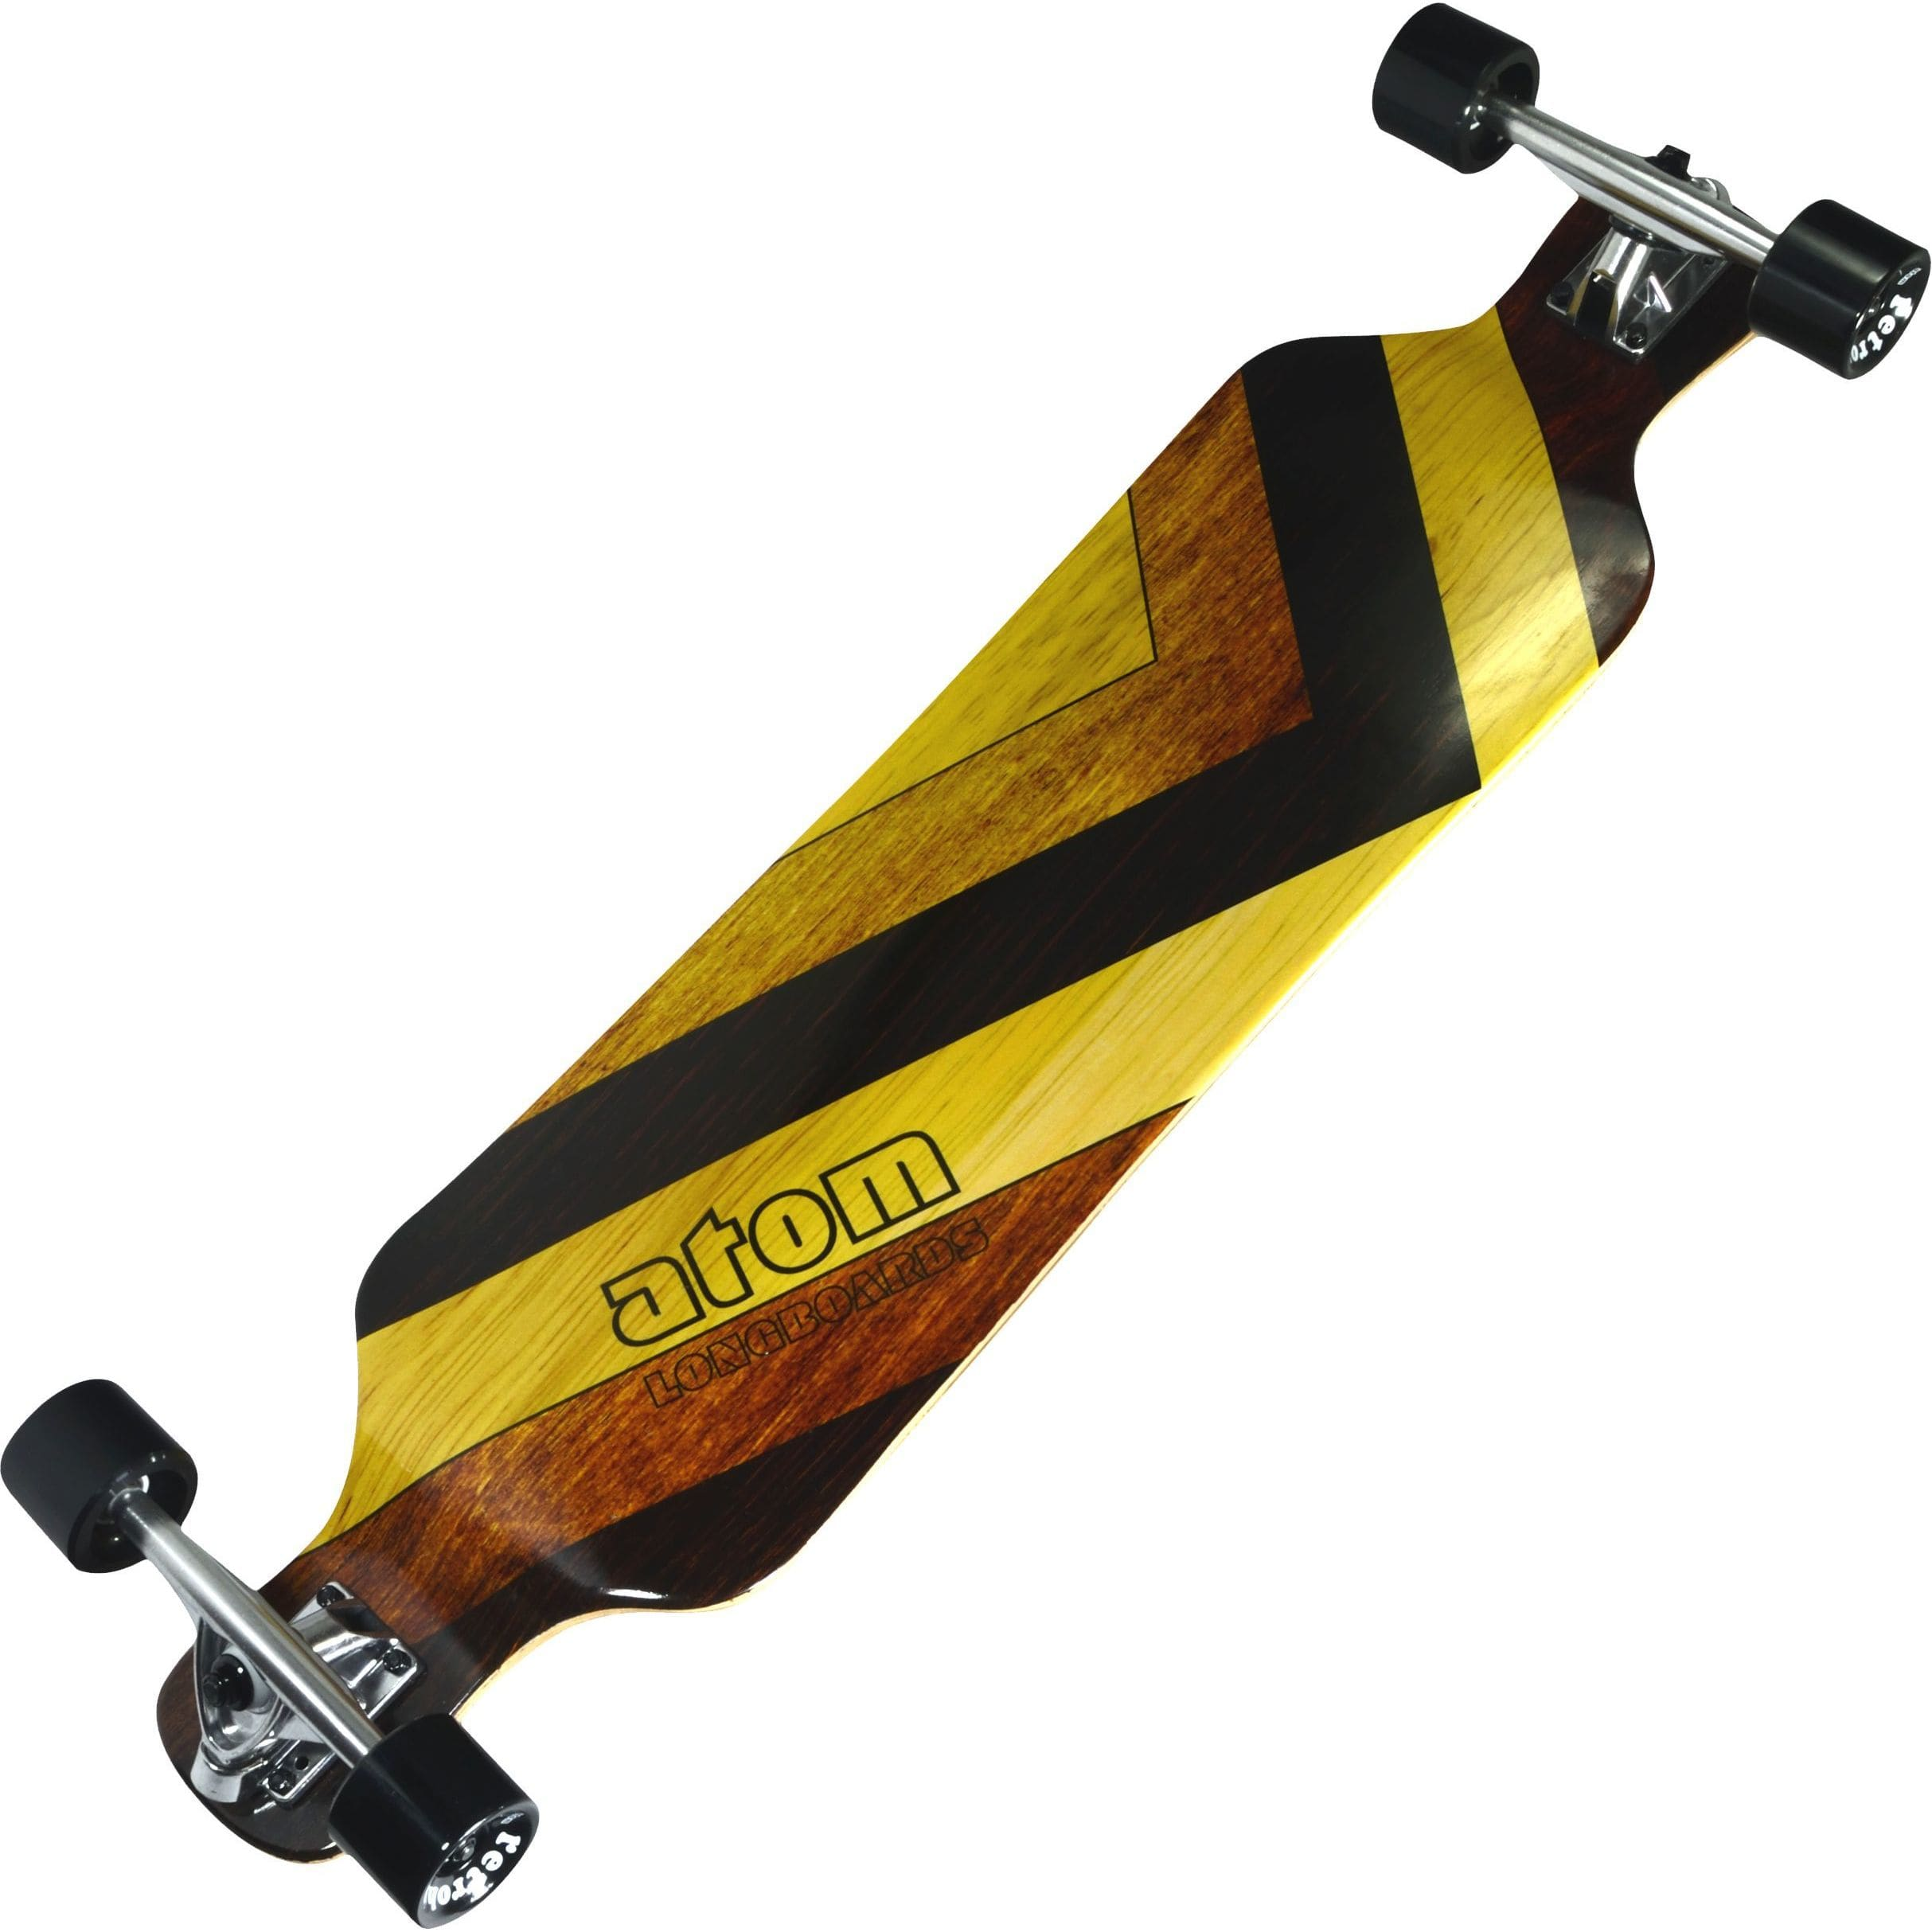 Atom Drop Deck Longboard 39 Inch (Woody) by Atom